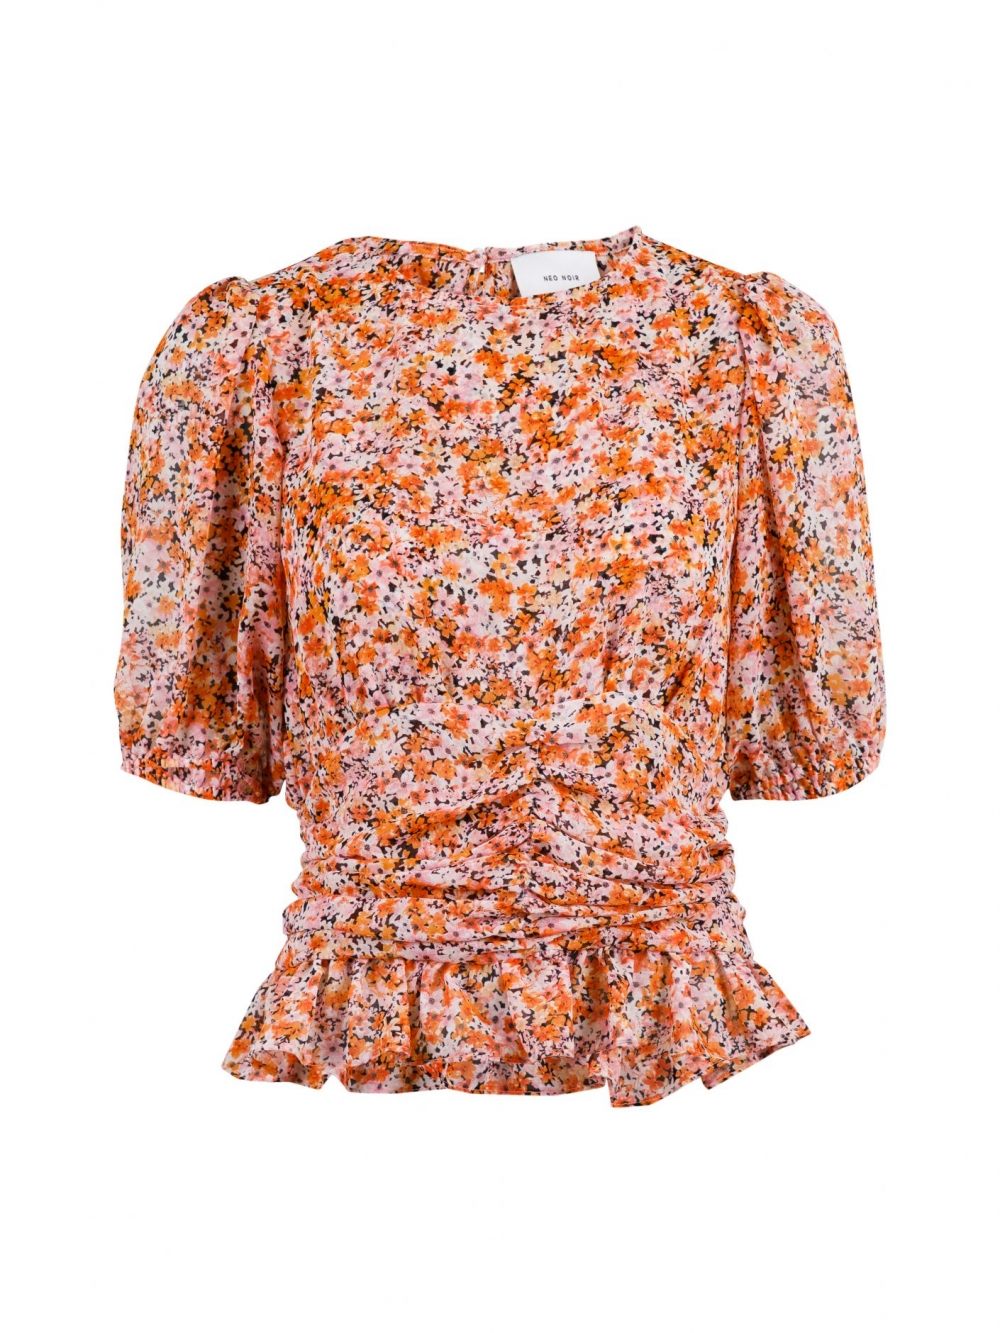 Neo Noir Tomine Dreamy Fall Blouse